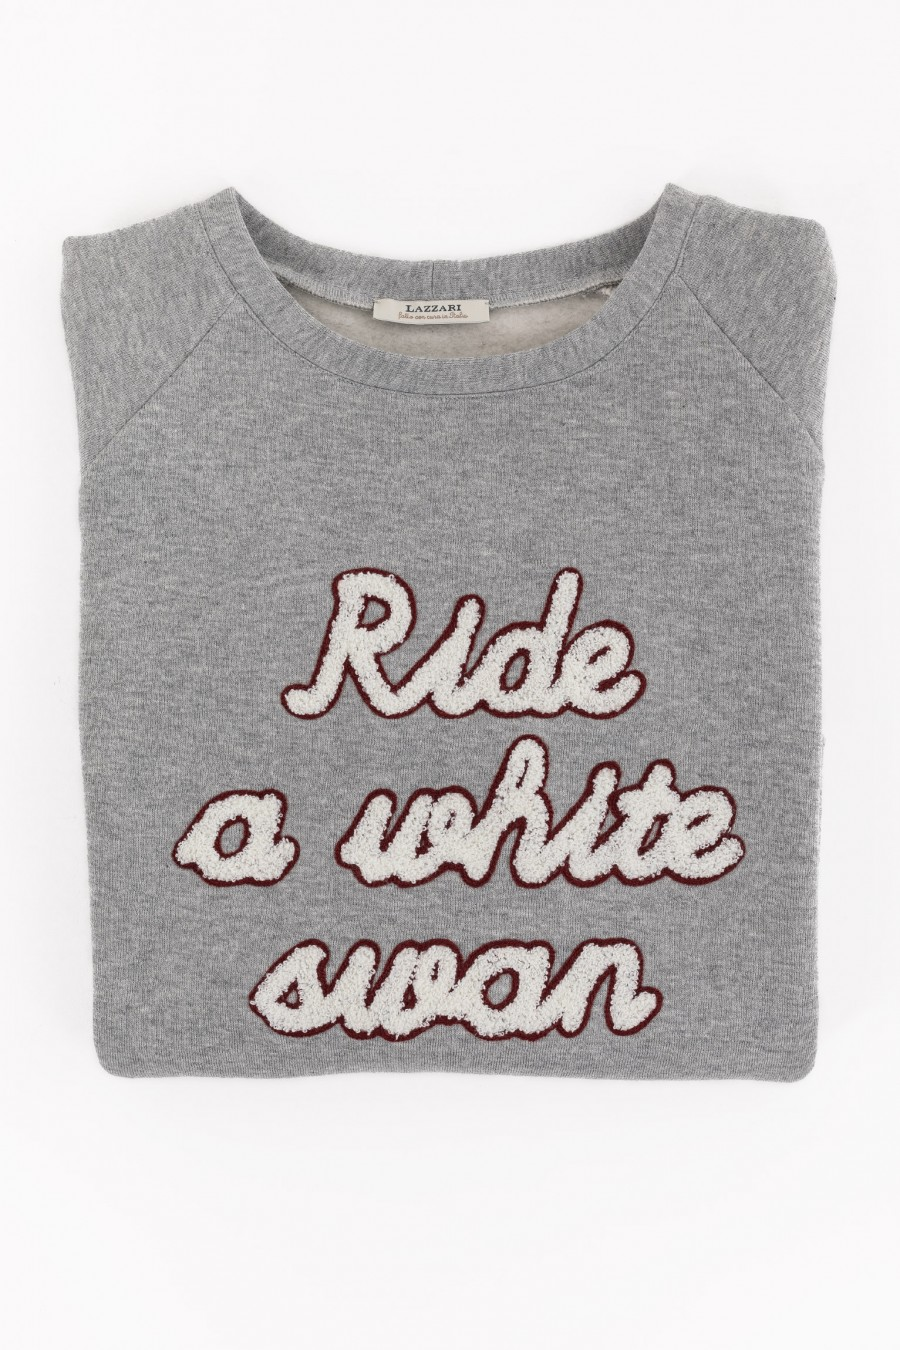 Gray Ride a White sweater